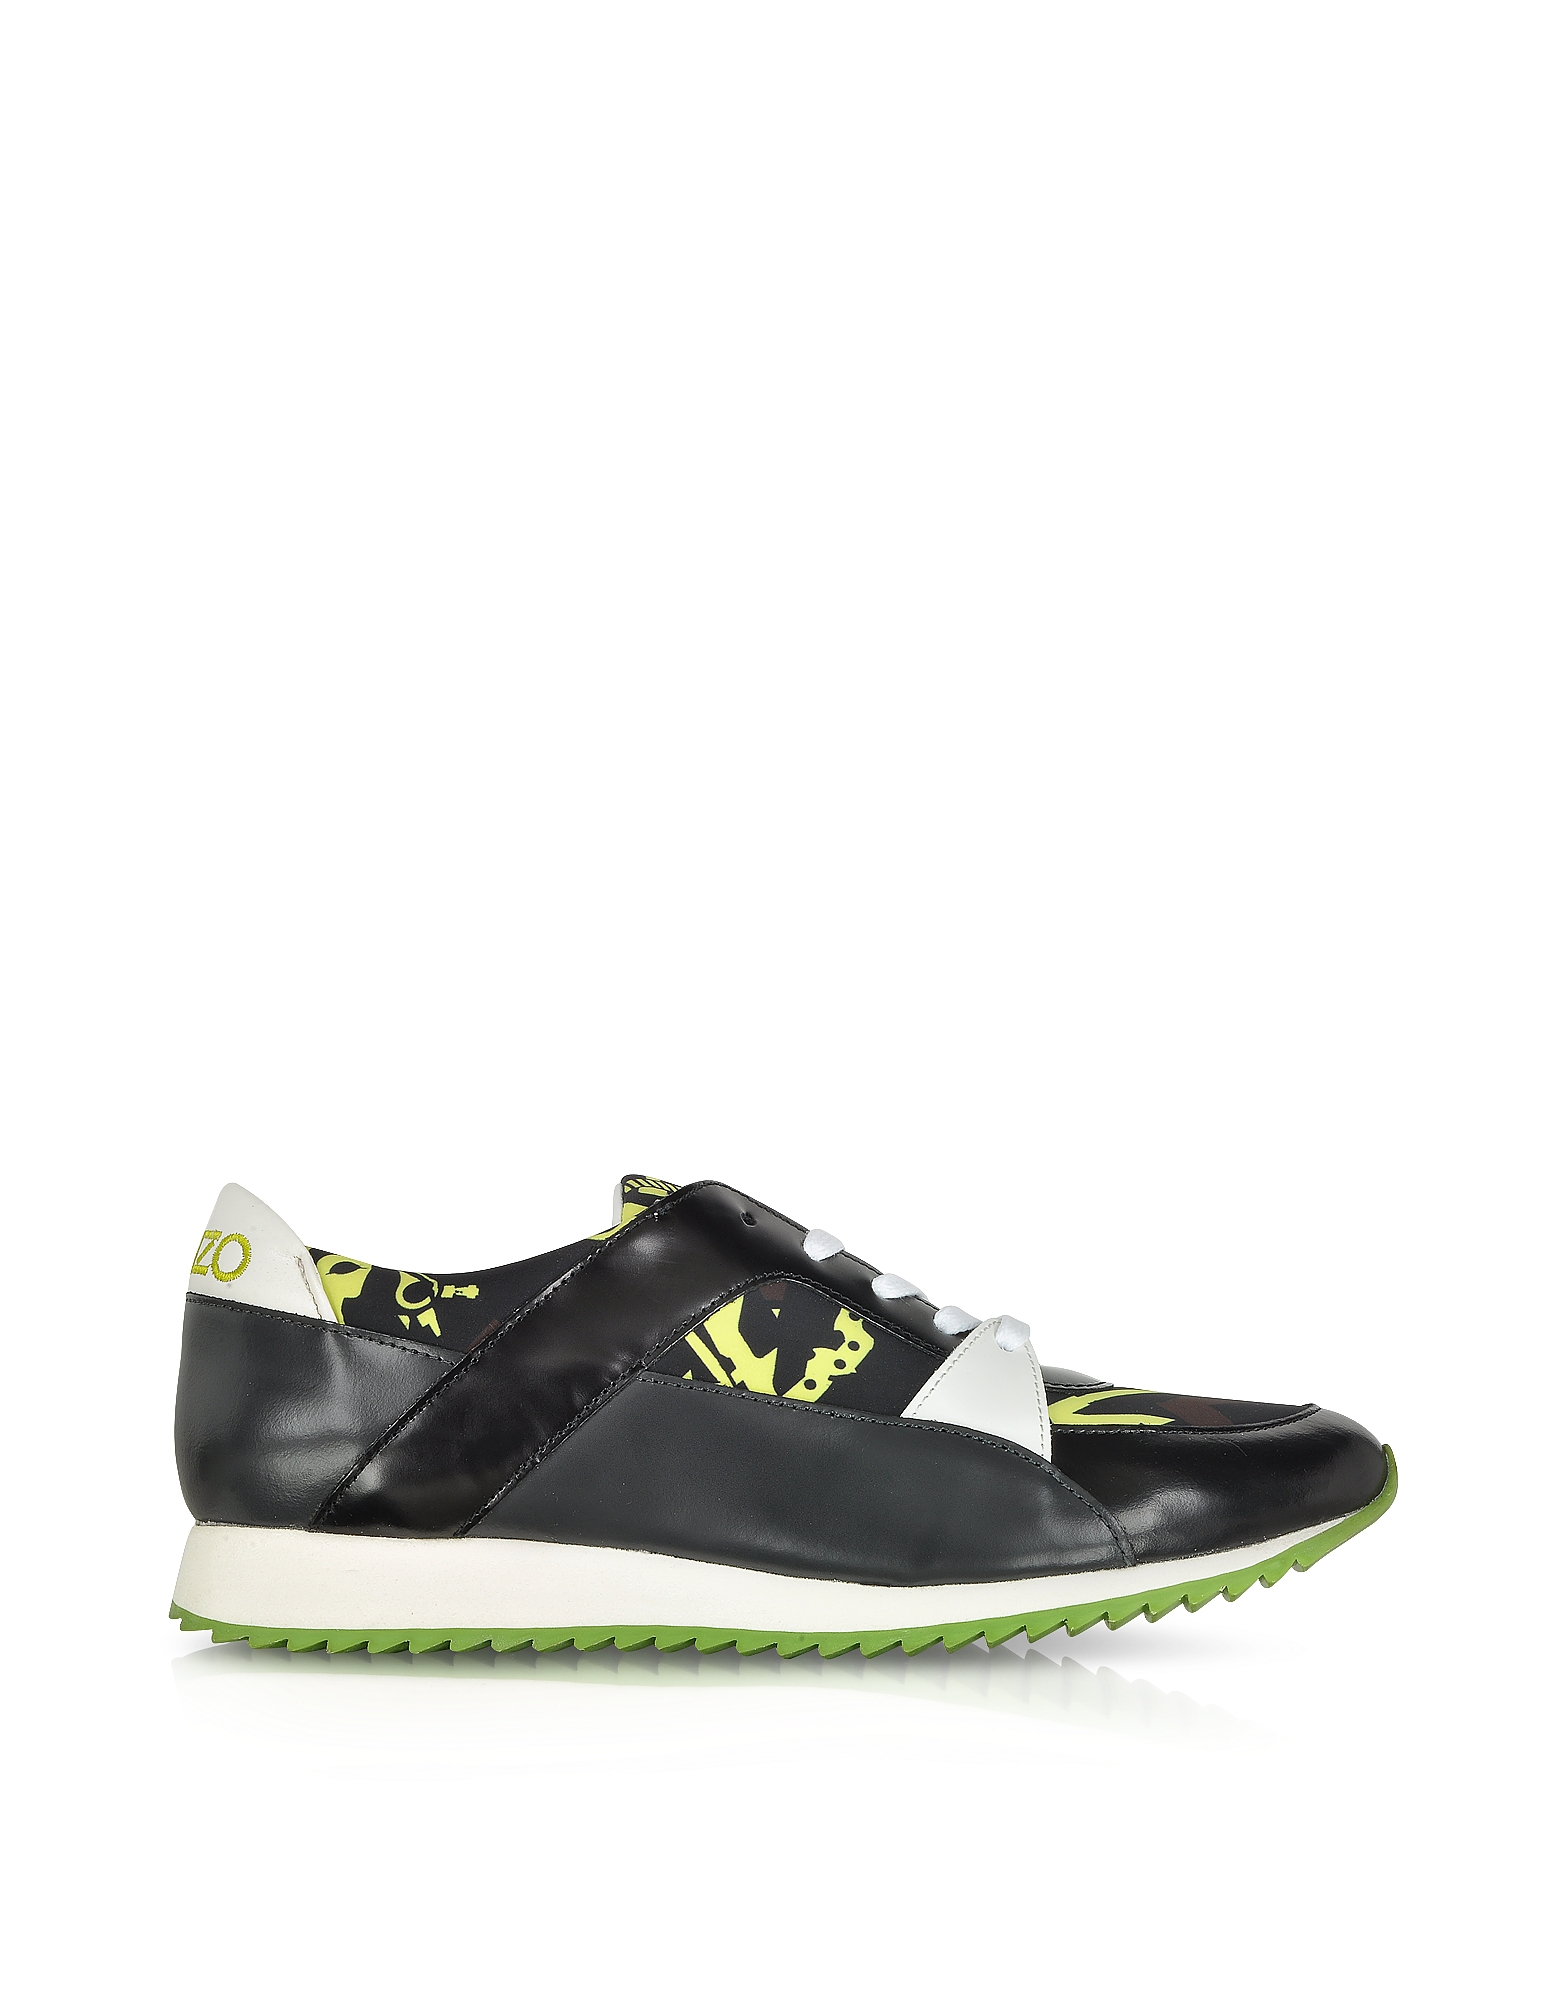 Kenzo Shoes, Monsters Leather and Nylon Sneaker